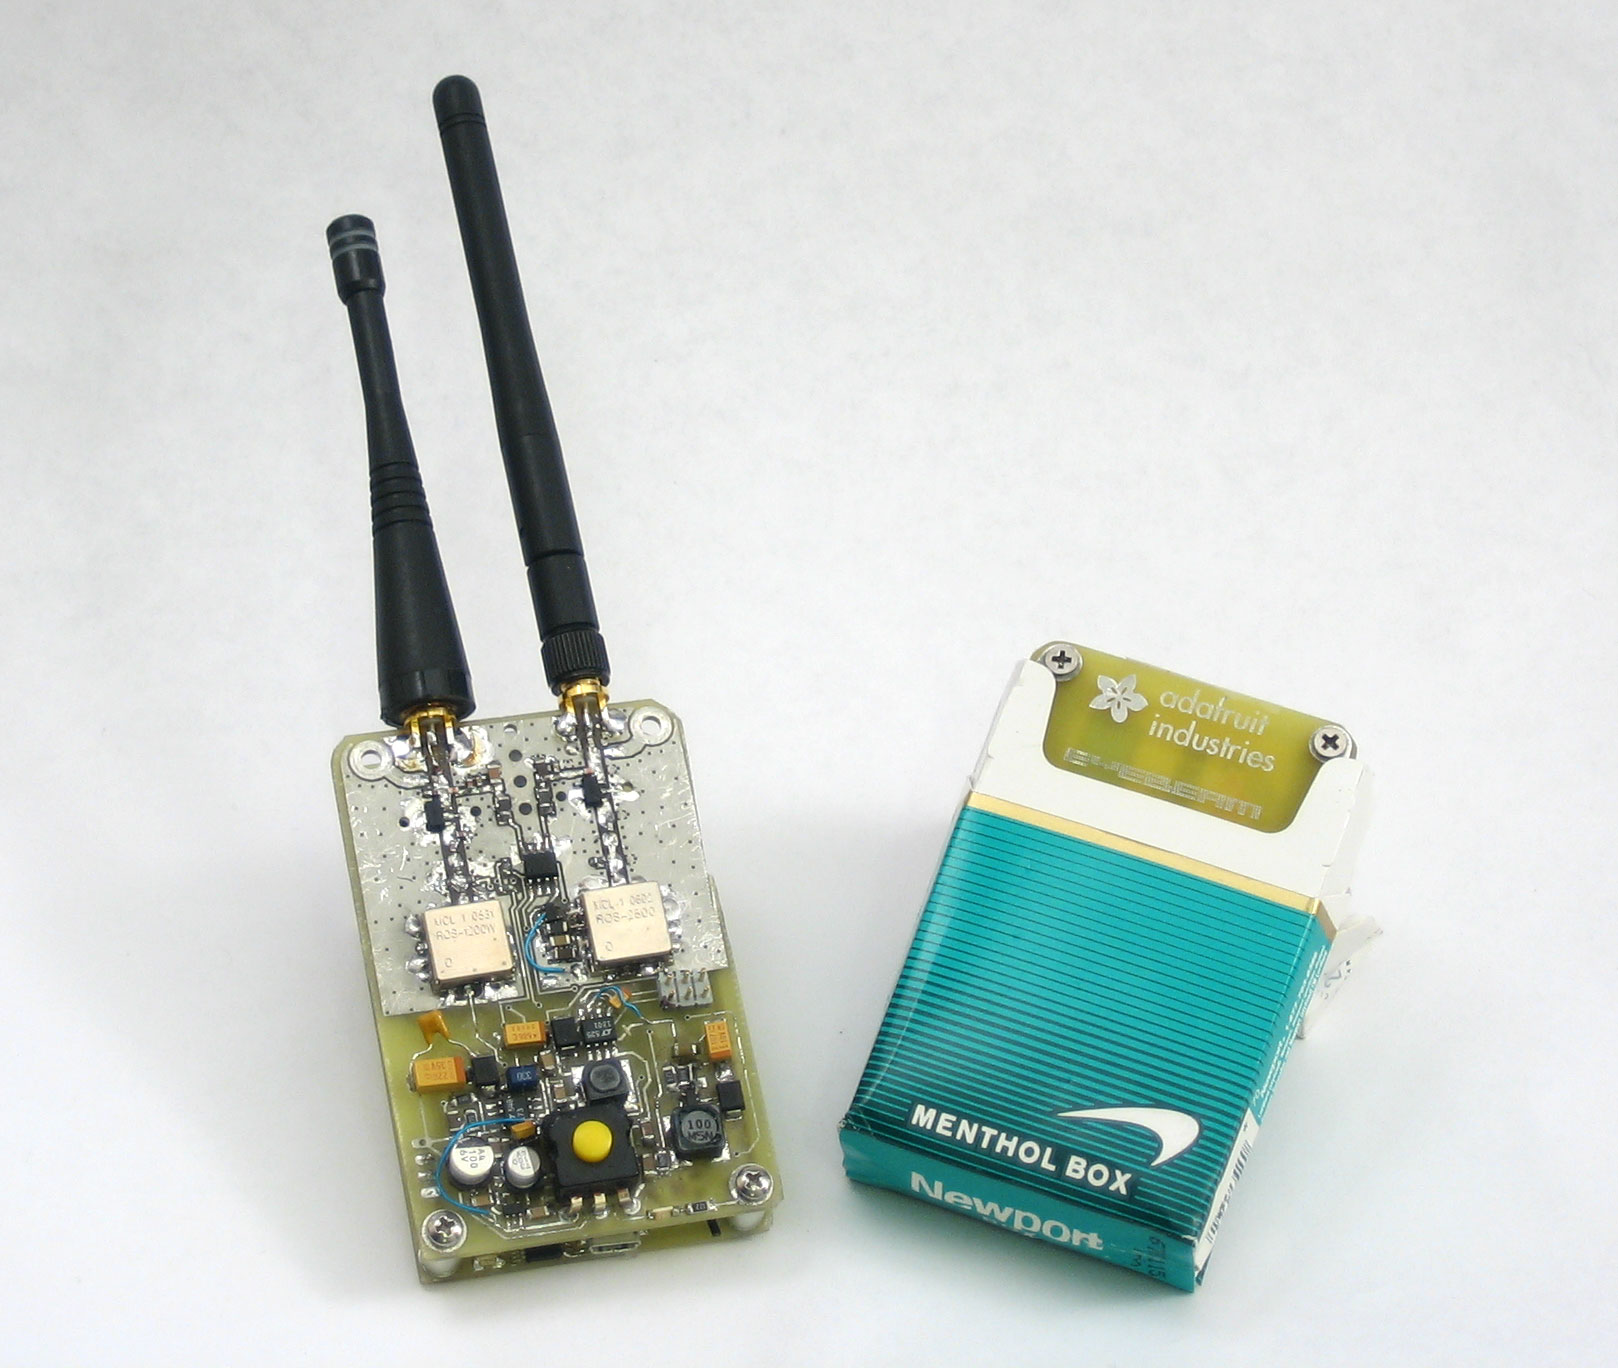 Drone Radio Signal Jammer Jammers For Sale Audio Noise Generator Detector Circuit